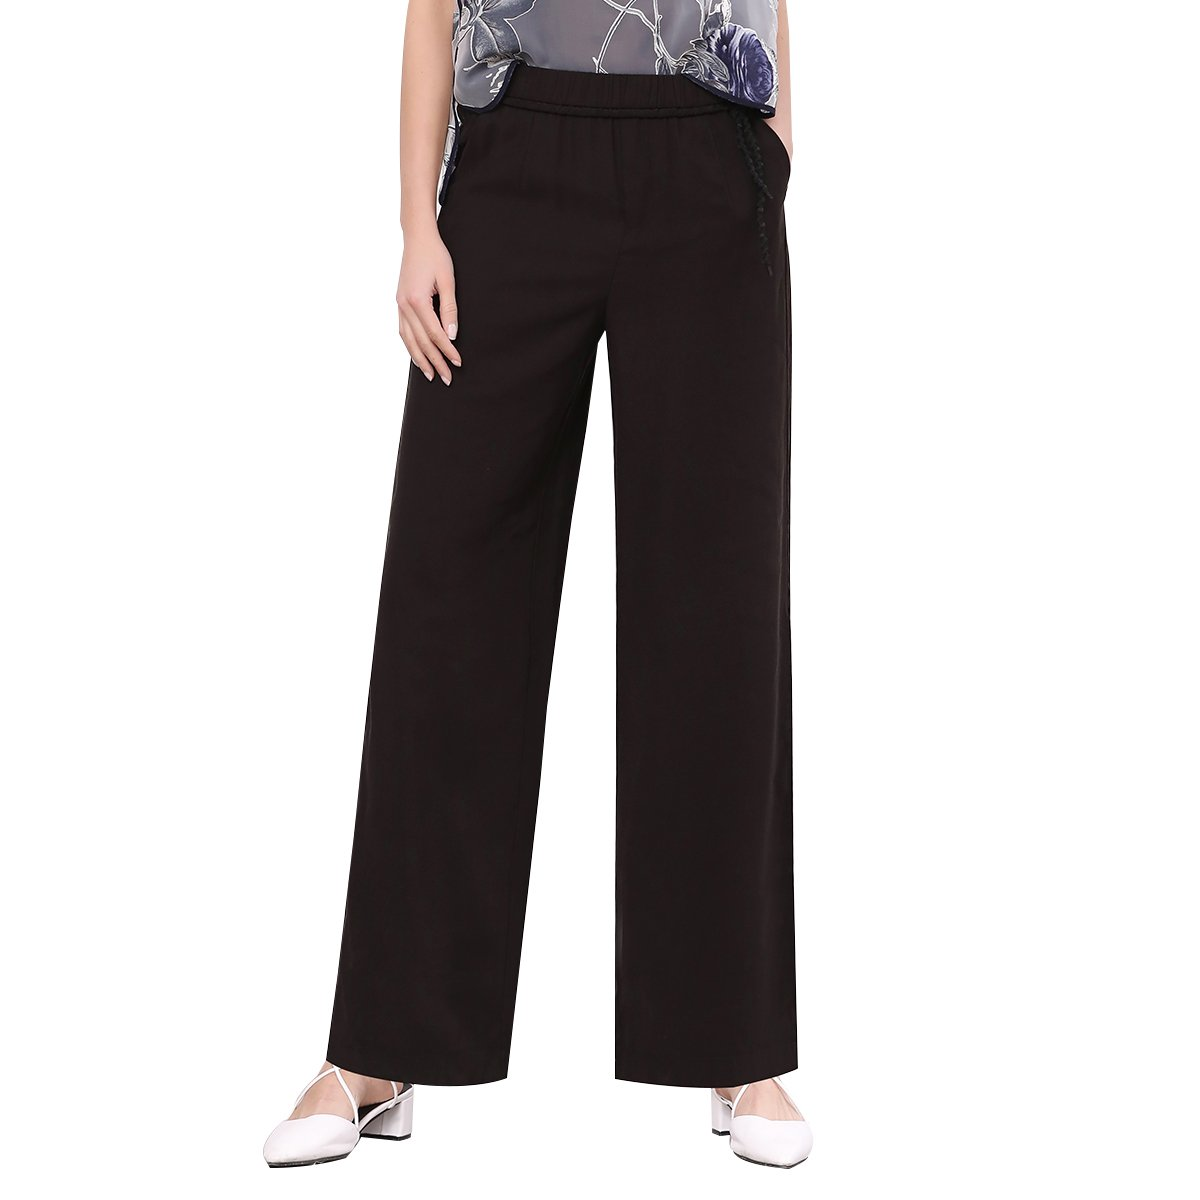 foluosidi Casual Trousers for Women Straight Pant Business Casual Pants High Waist Long Trouser Pant